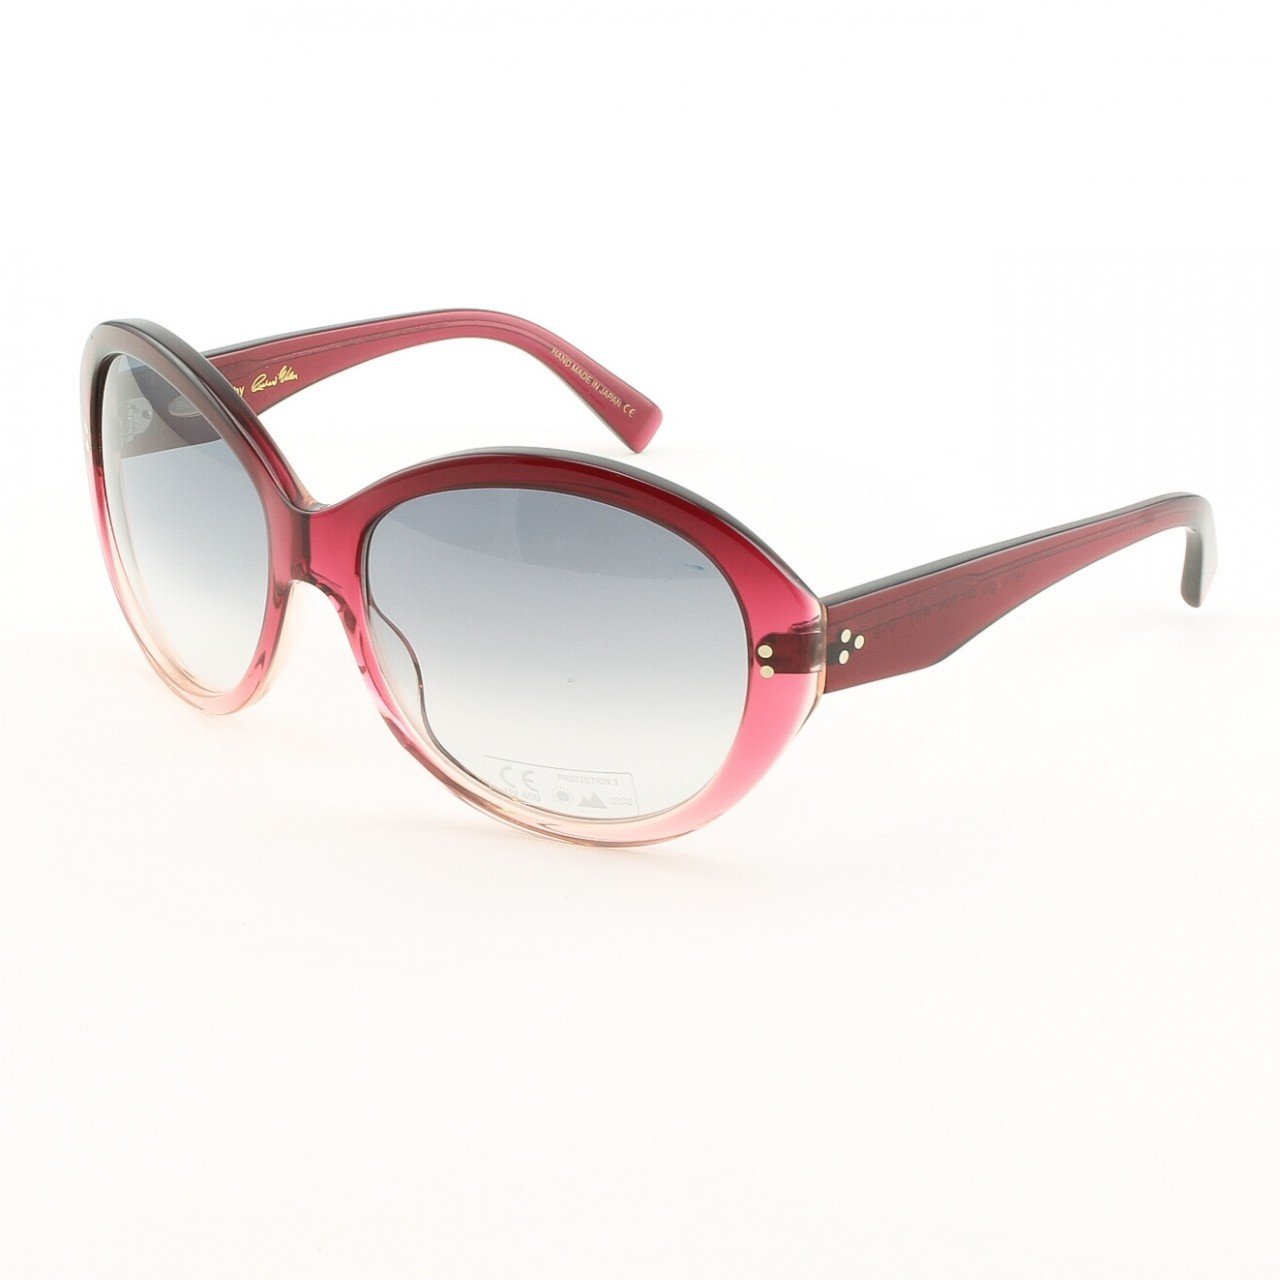 Blinde Lets Go All The Way Women's Sunglasses Col. Red Cranberry Fade with Purple Gradient Lenses